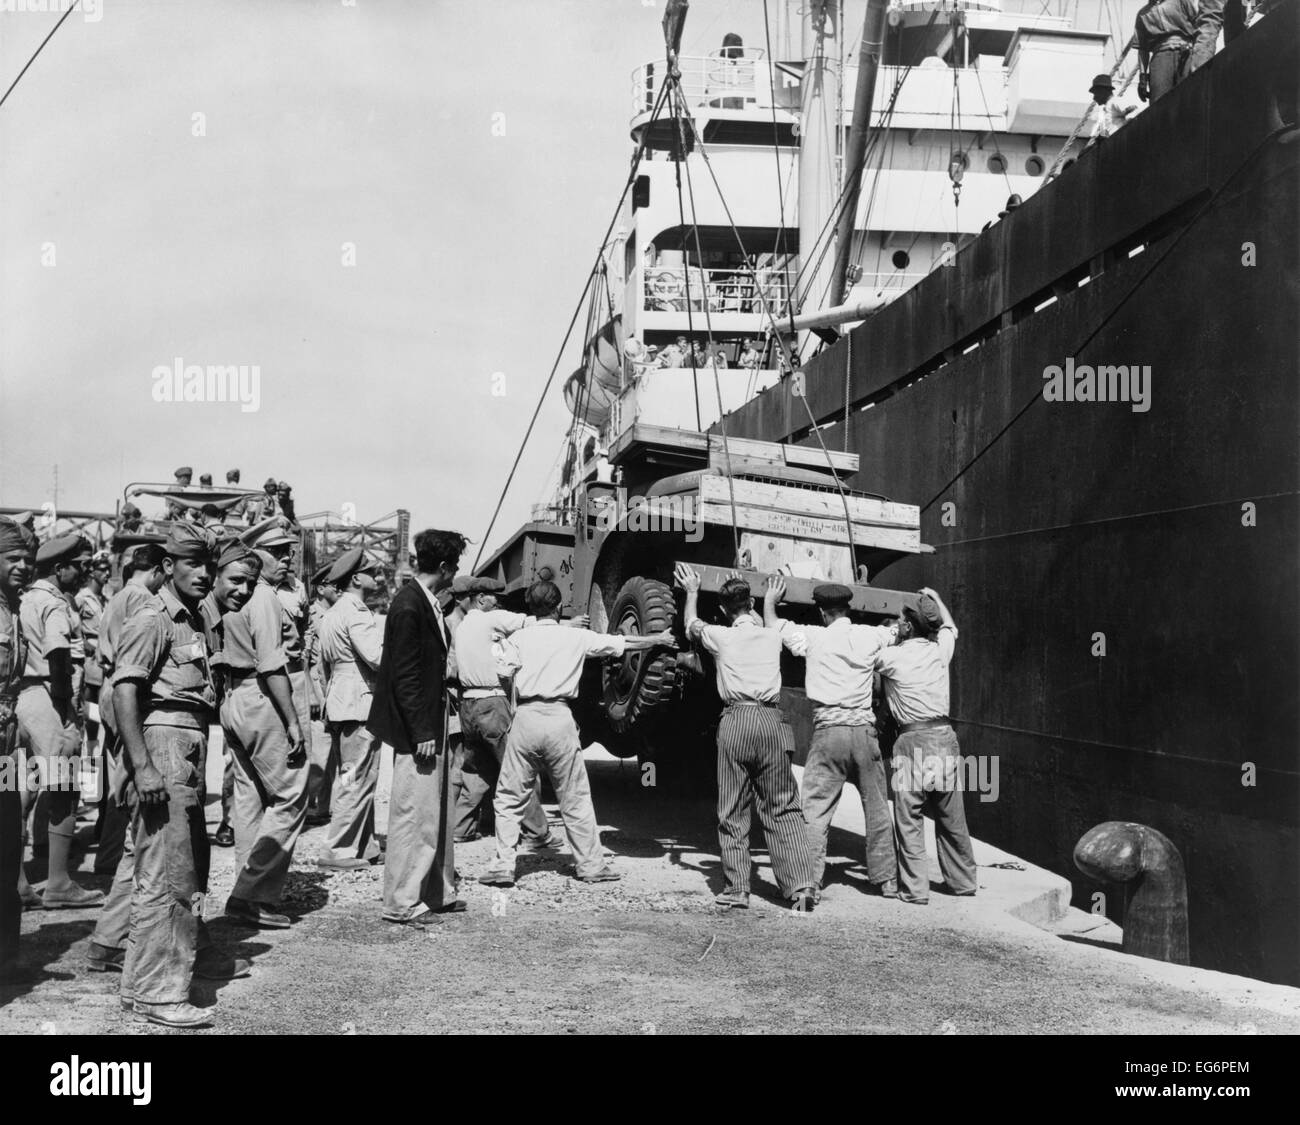 American-made truck lowered from a freighter at Piraeus as part of a relief effort to Greece. U.S. aid supported Stock Photo